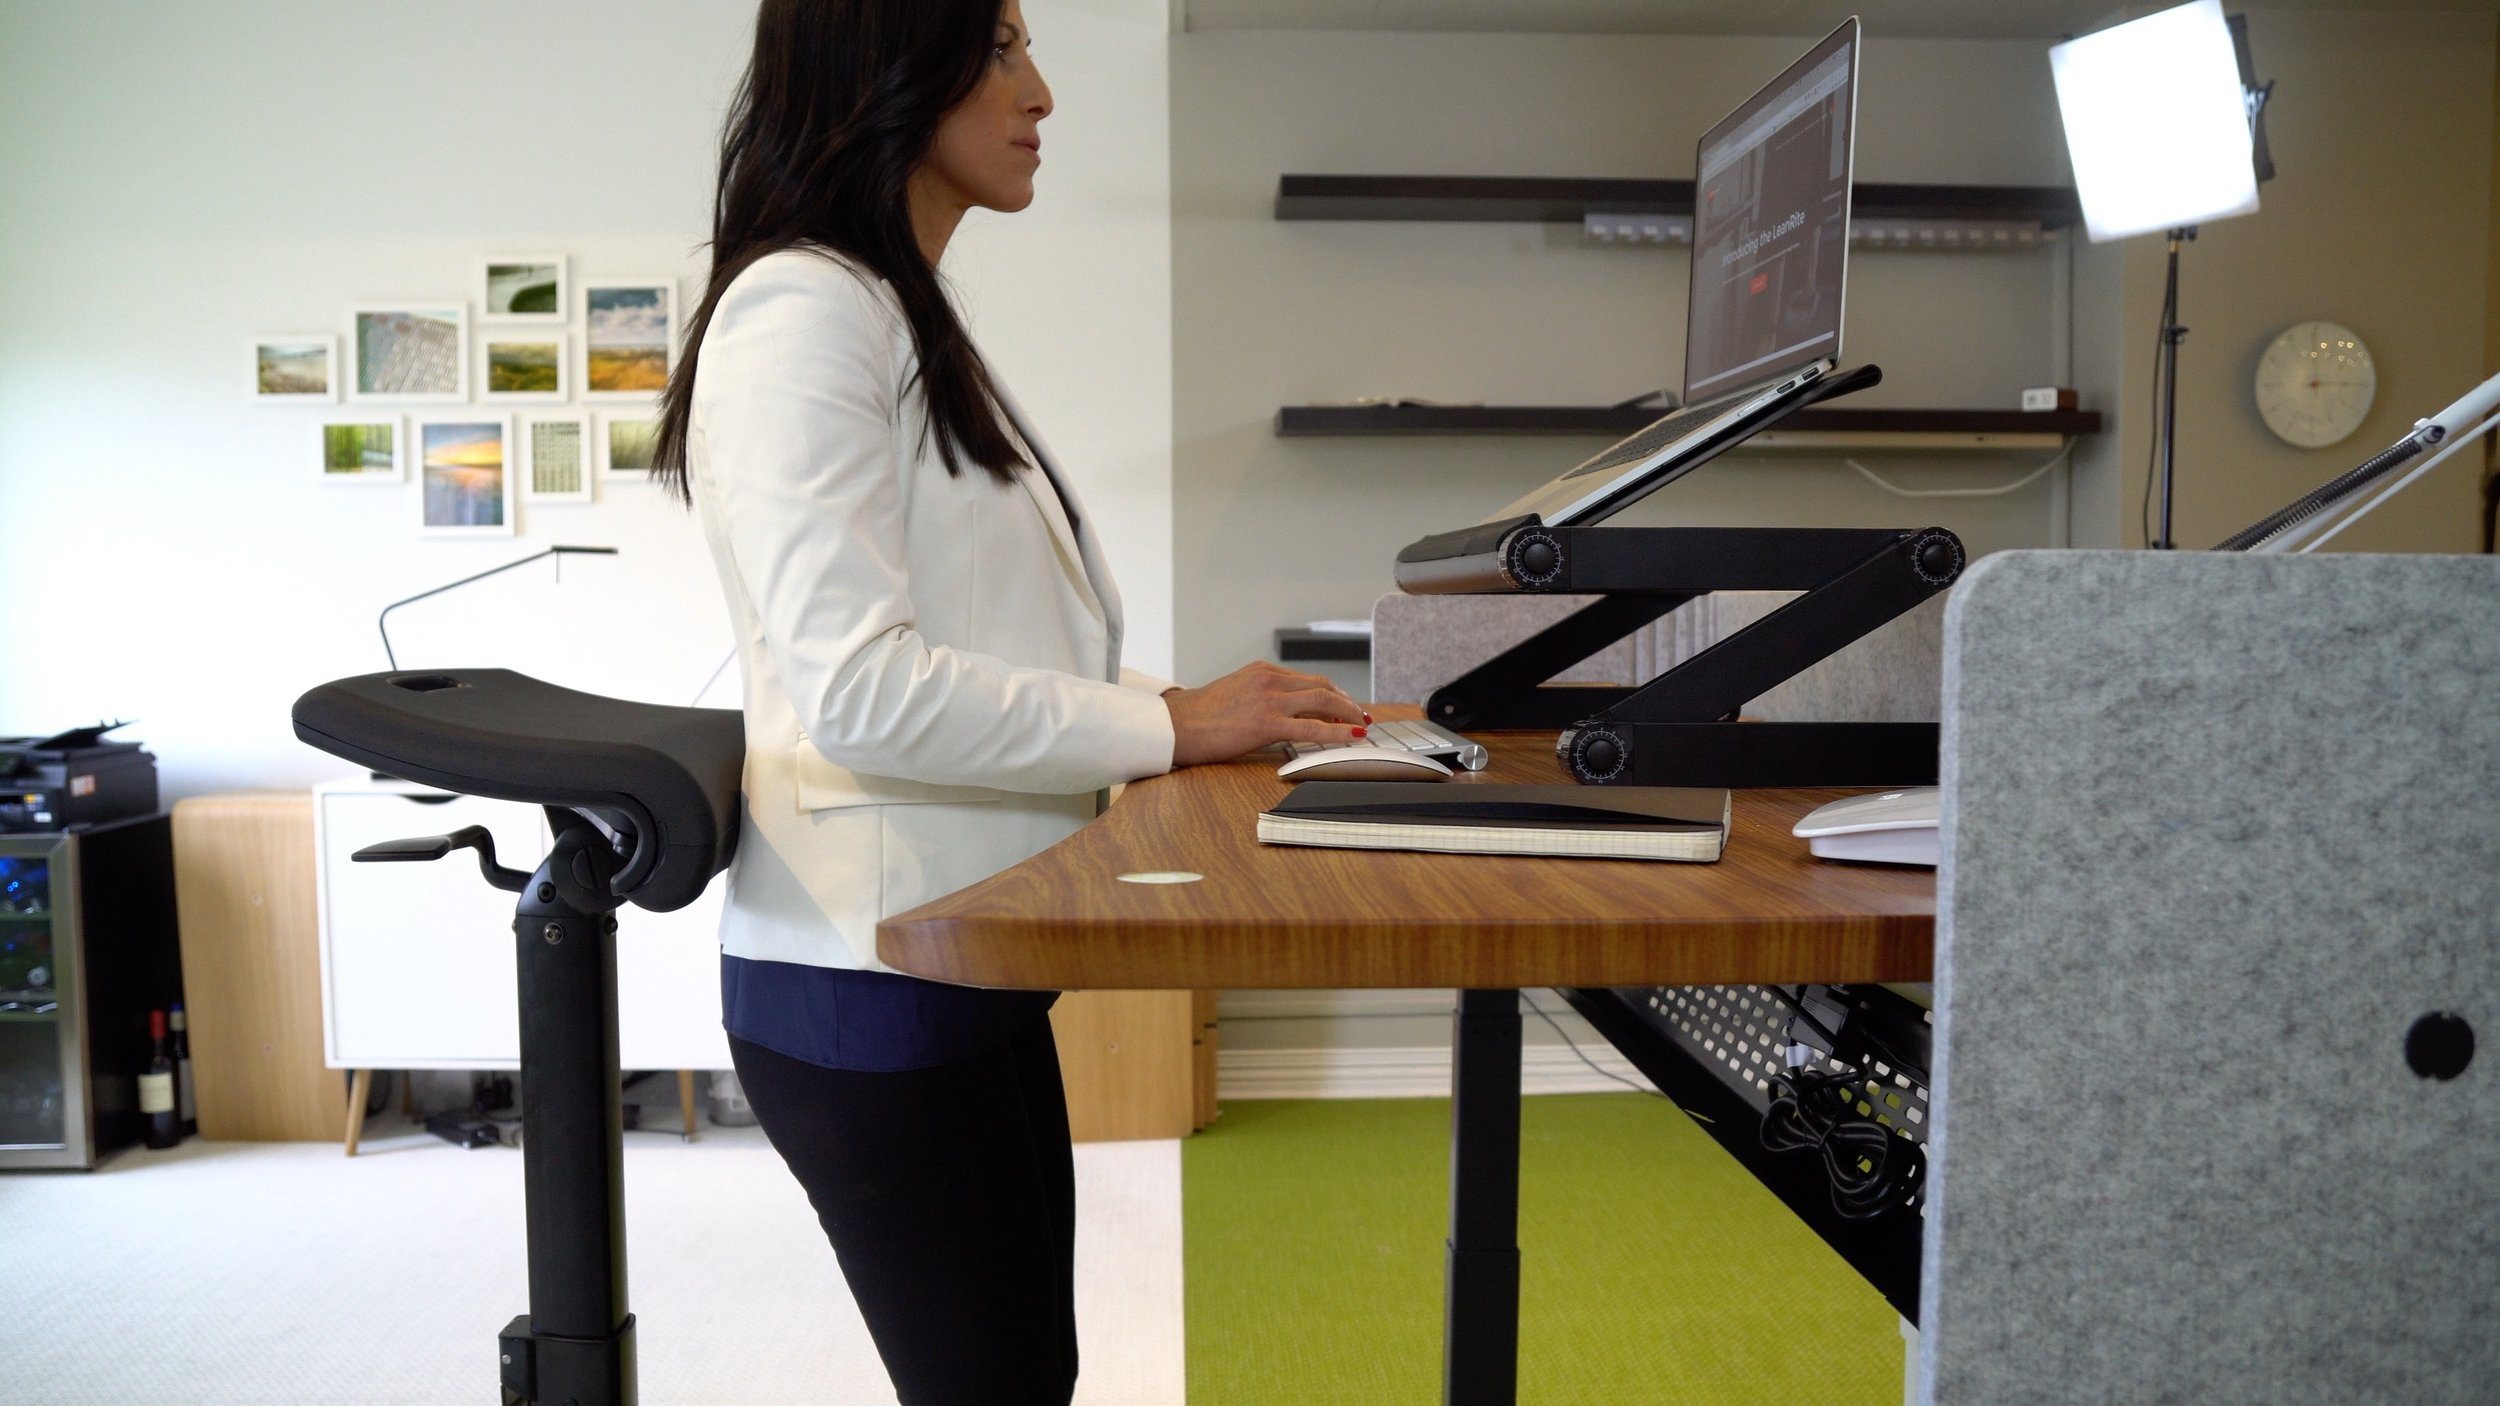 The LeanRite adjusts easily to support the body in numerous working postures sit-to-stand. Here, a 'lumbar lean' posture is demonstrated with lumbar support providing relief to the body when working standing up